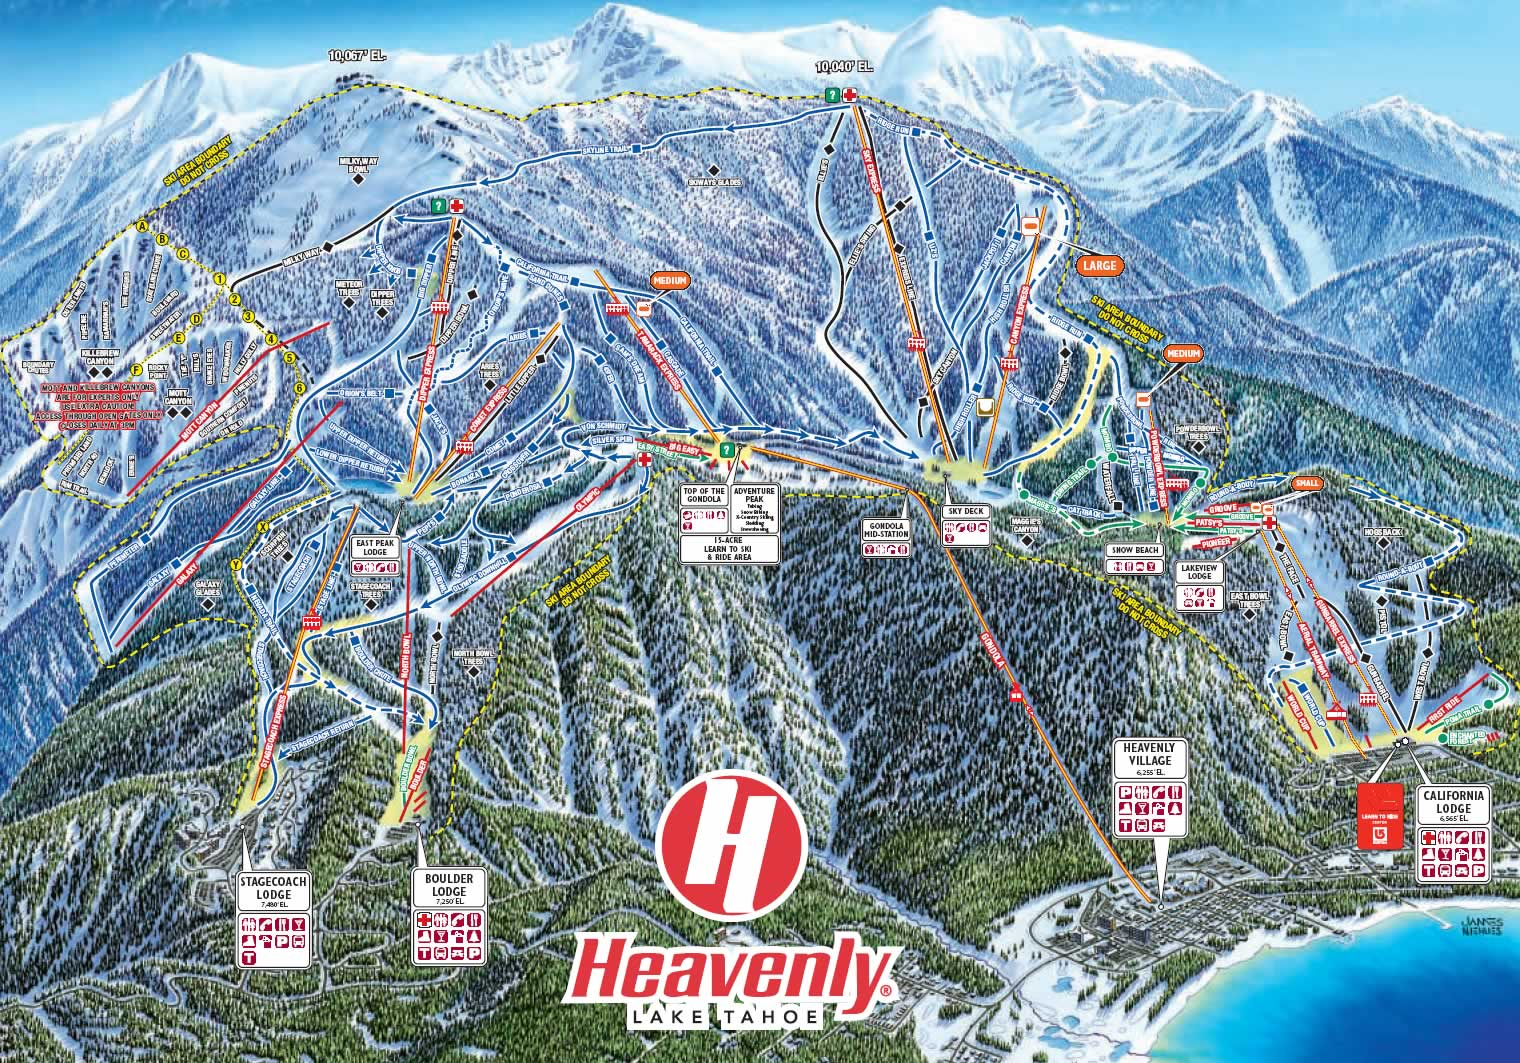 heavenly_mountain_ski_area_trail_map